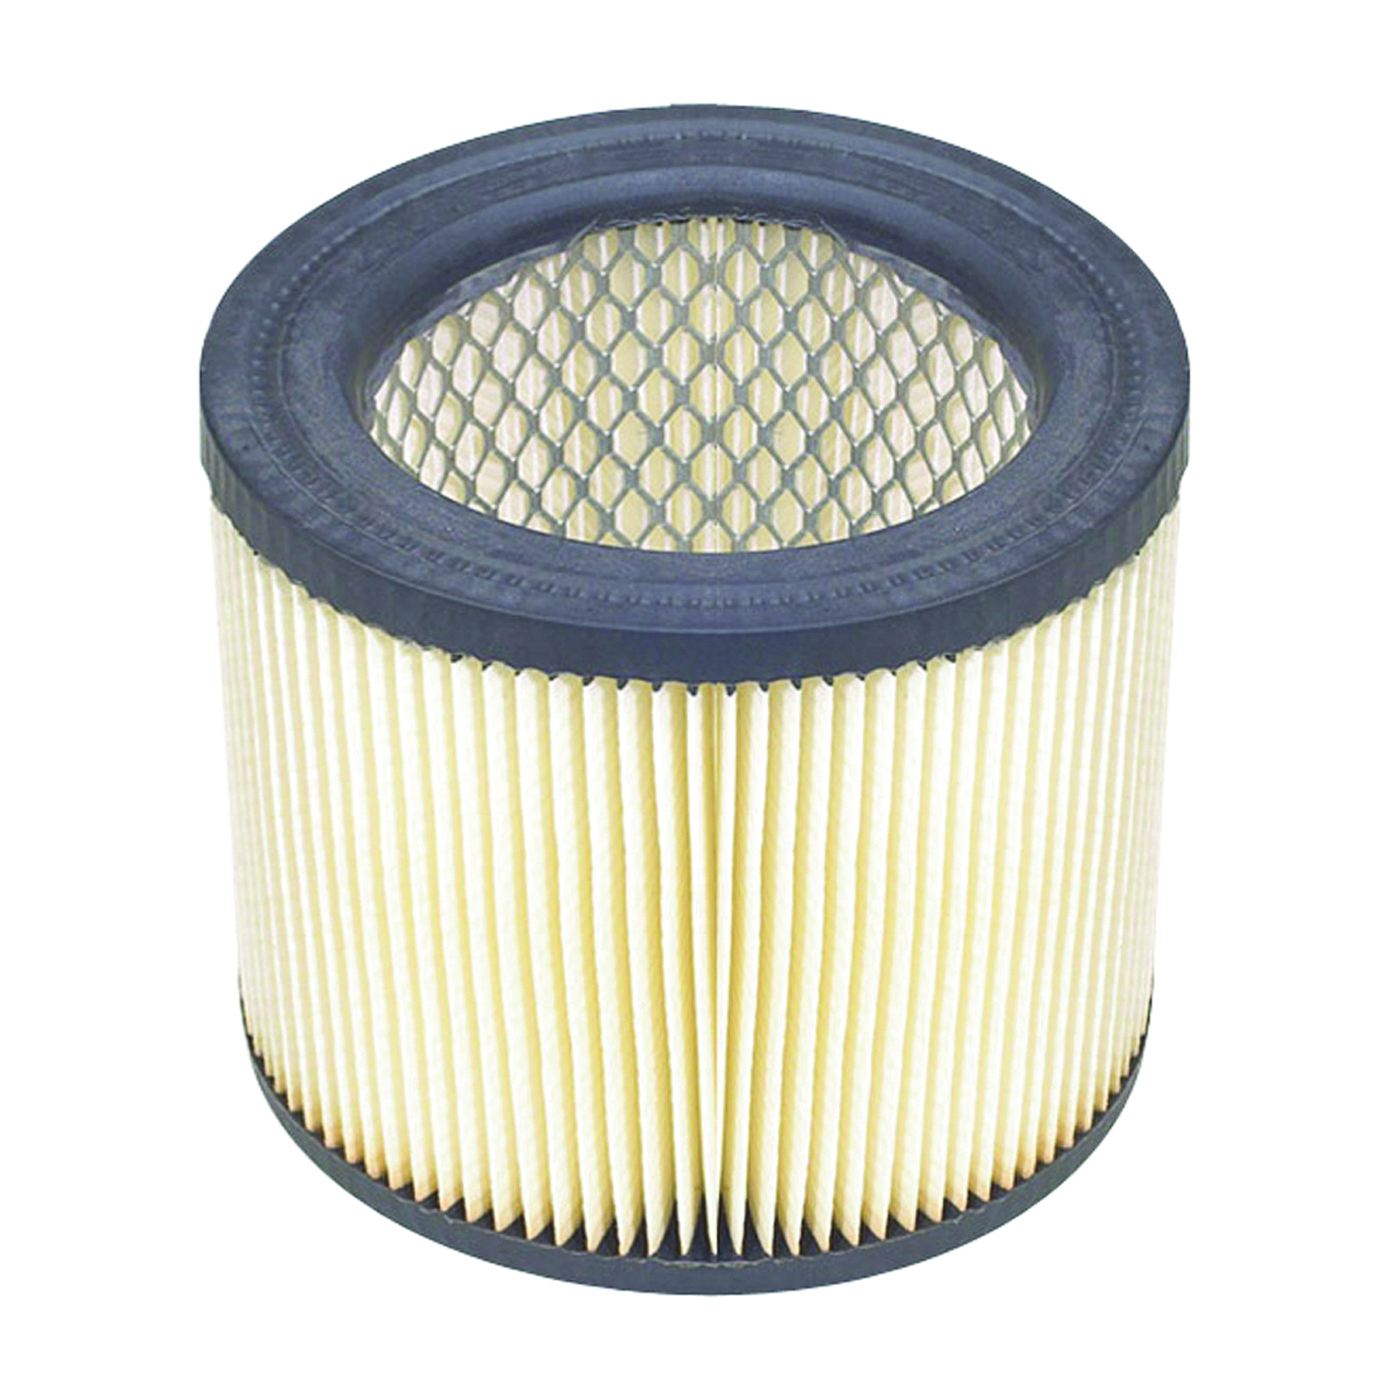 Picture of Shop-Vac 9039800 Cartridge Filter, 5-3/4 in Dia